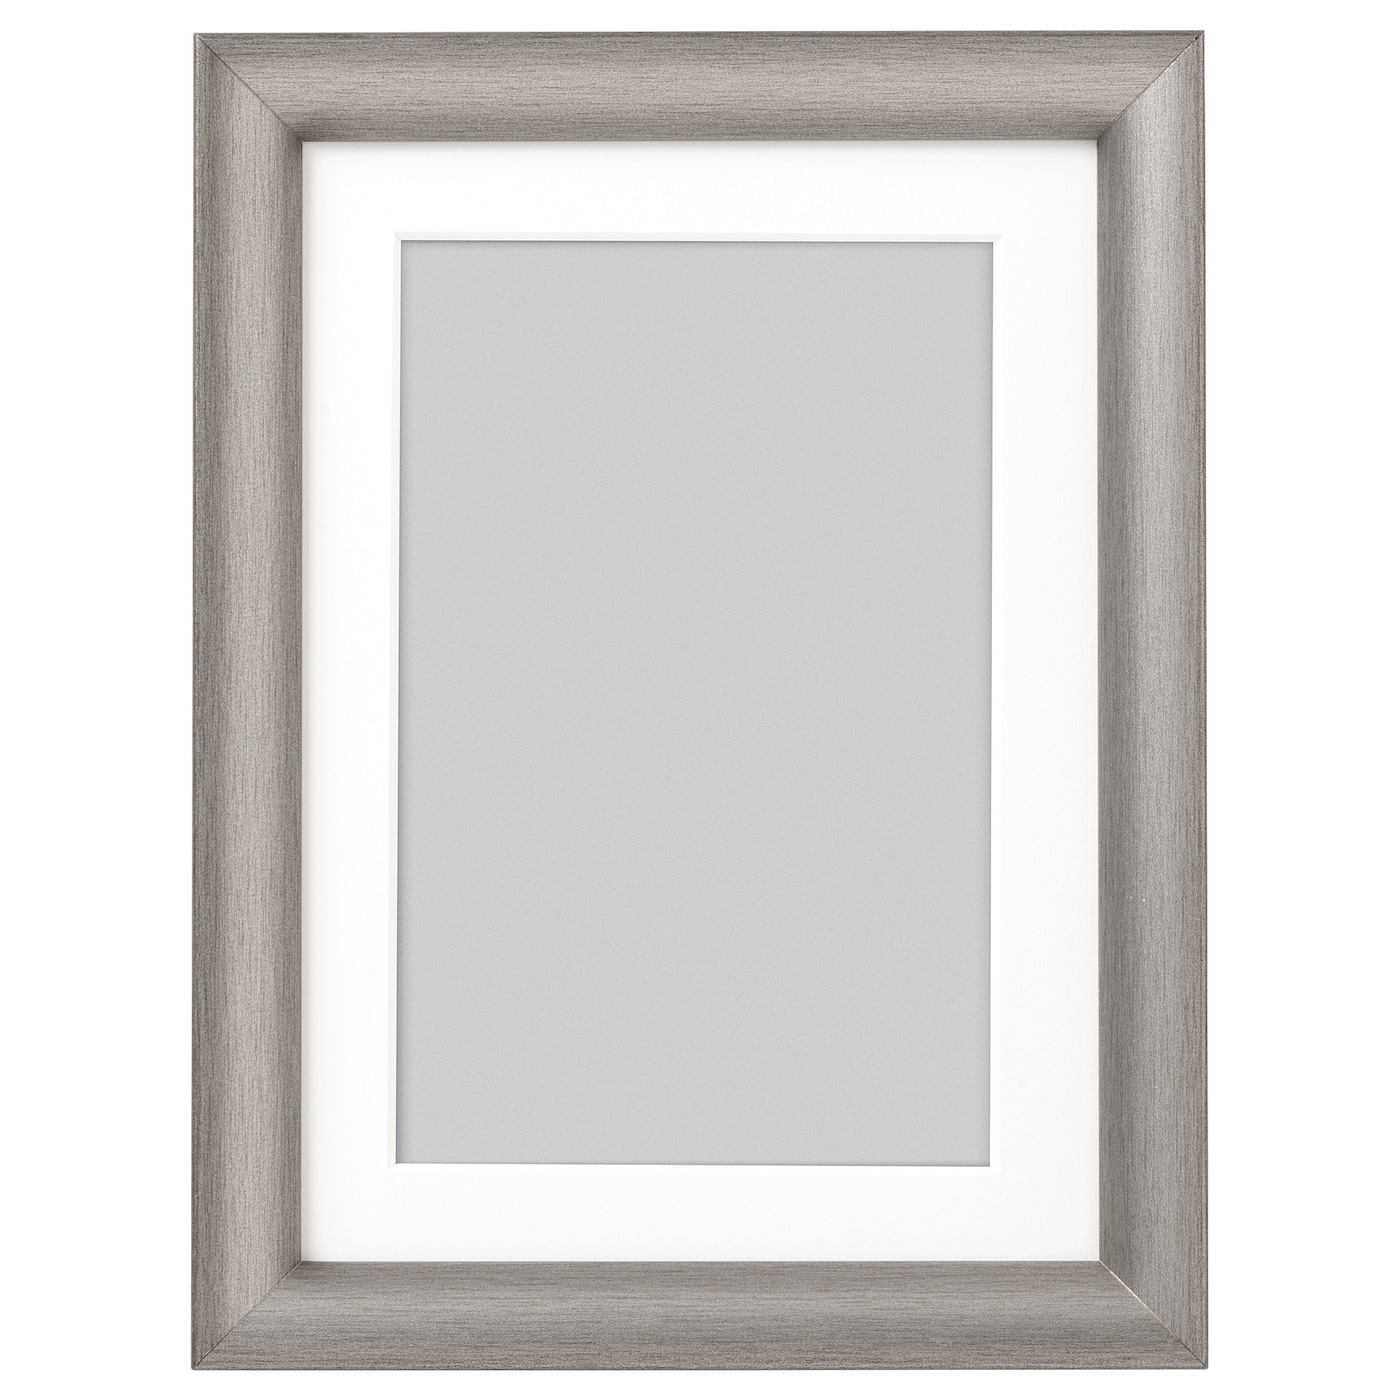 IKEA SILVERHÖJDEN frame PH-neutral mount; will not discolour the picture.